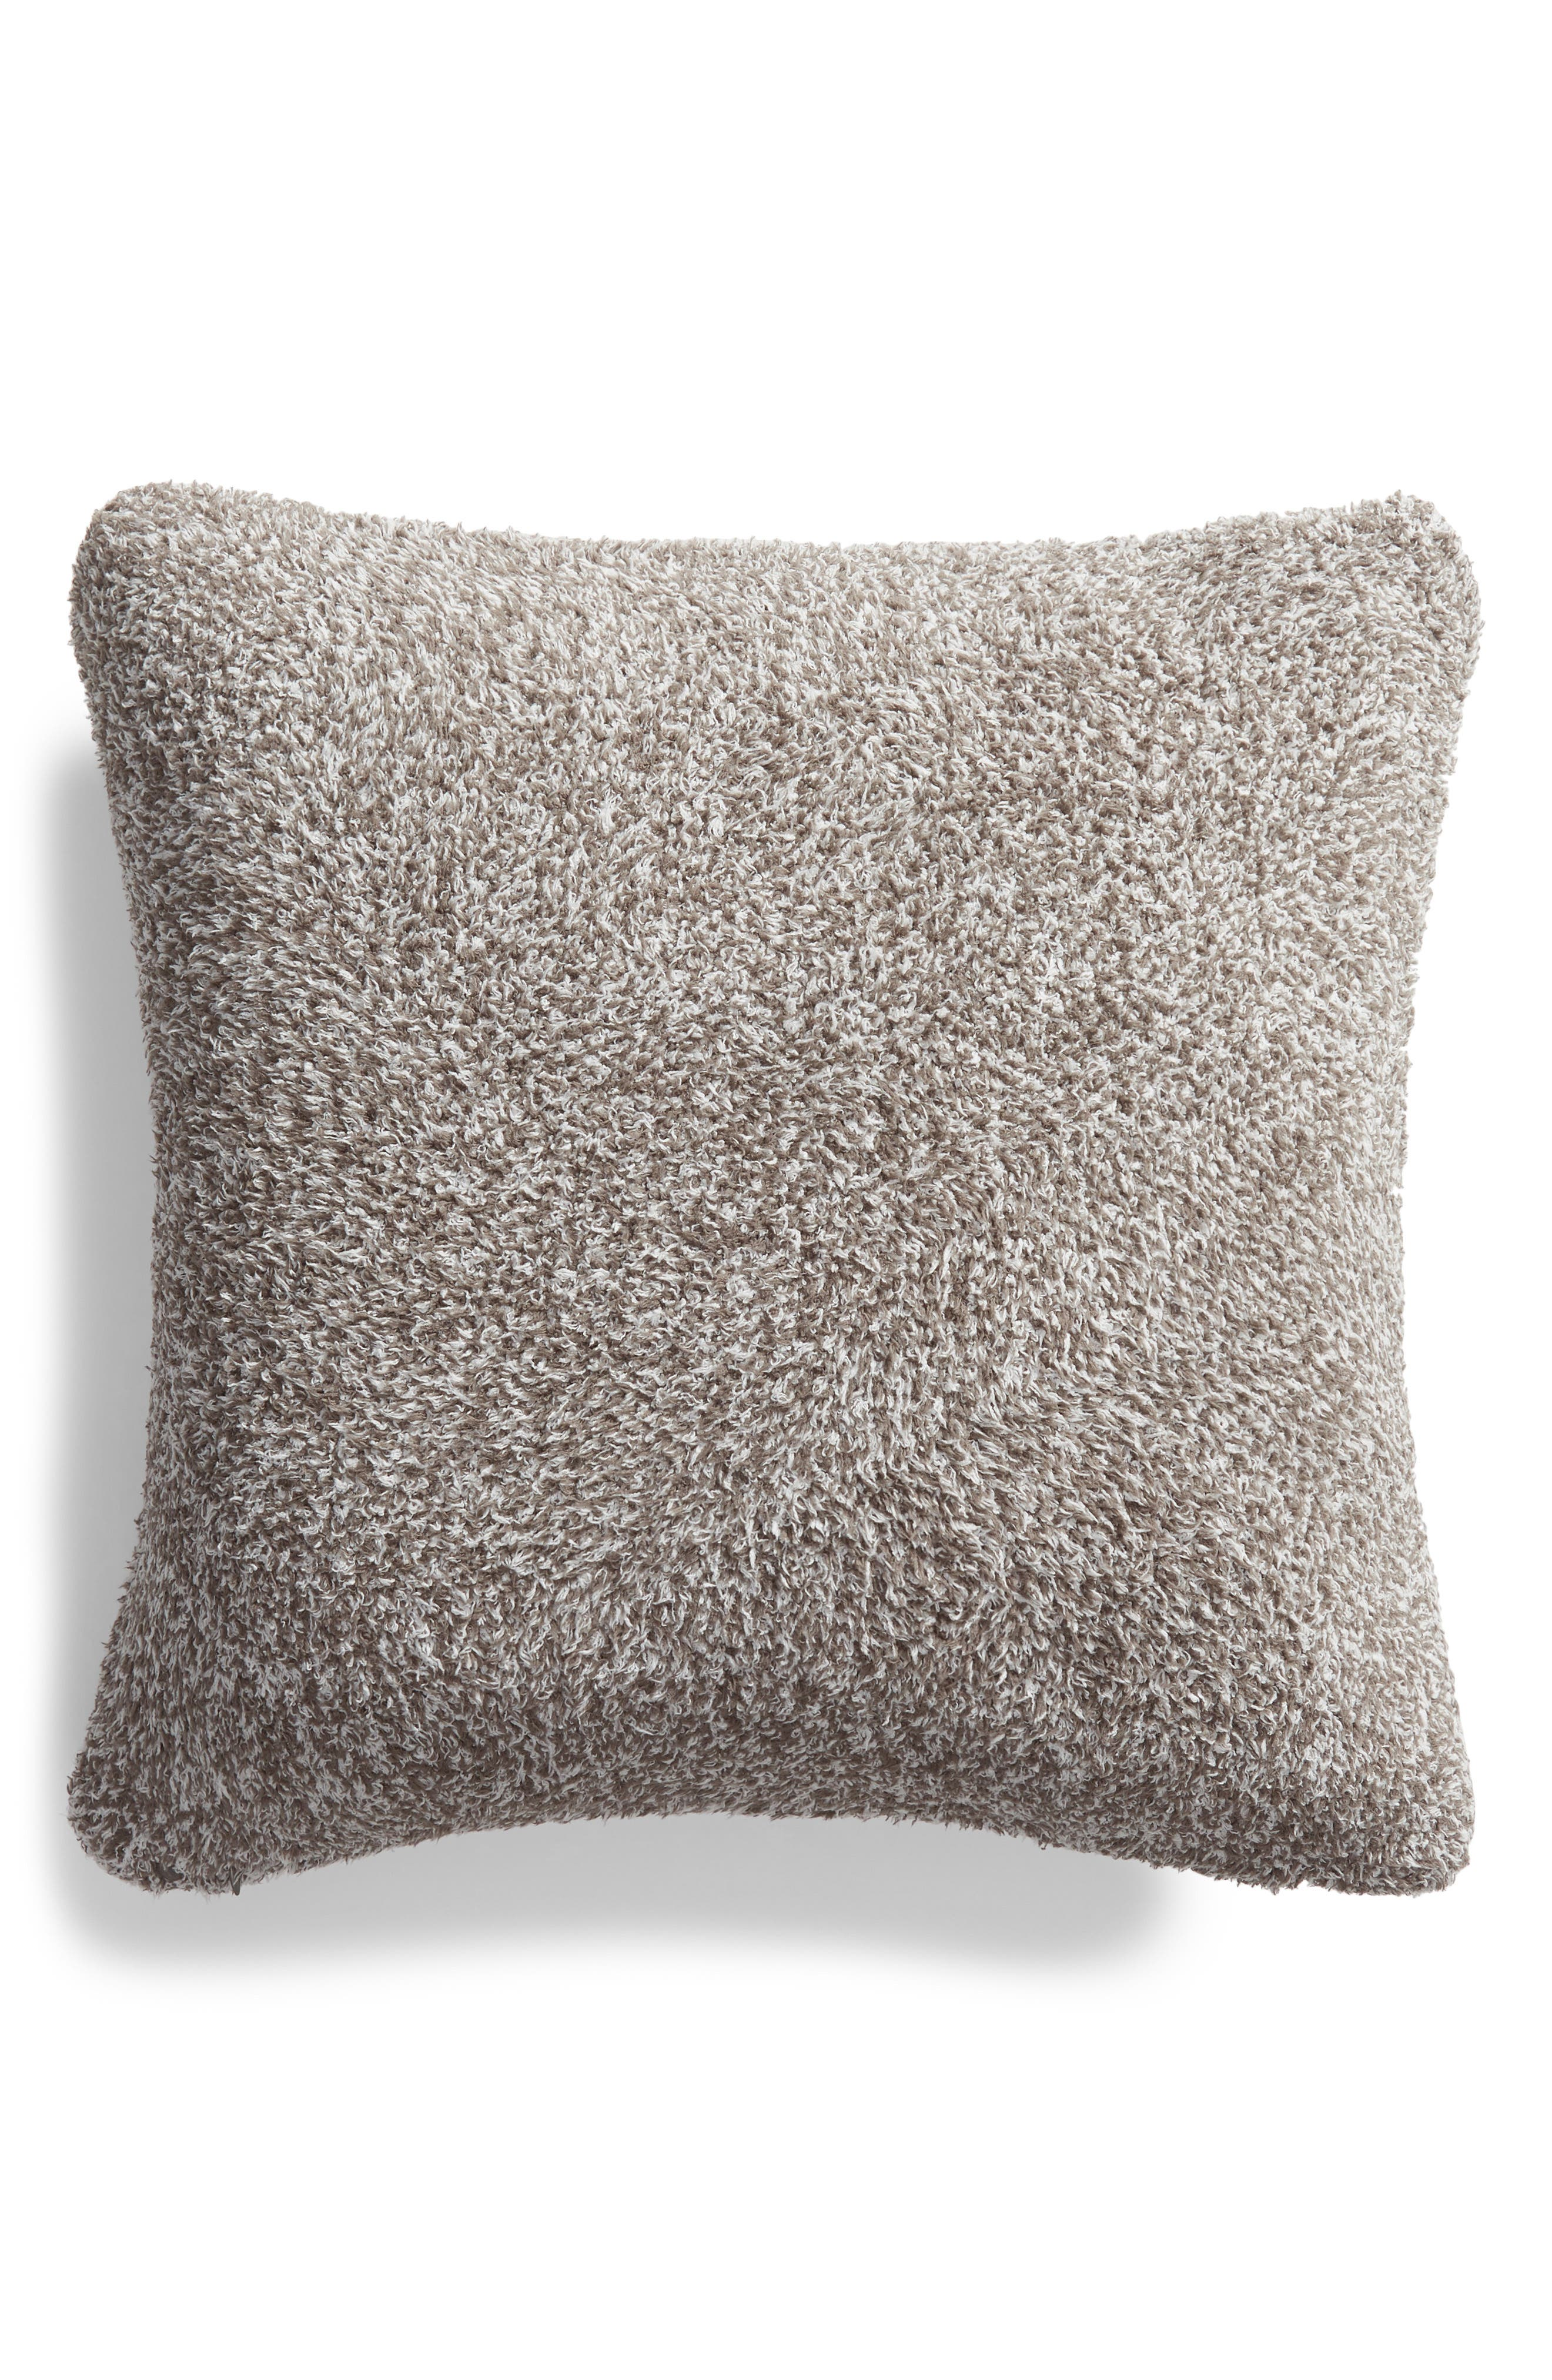 Cozychic<sup>®</sup> Heathered Accent Pillow,                             Alternate thumbnail 2, color,                             Charcoal/ White